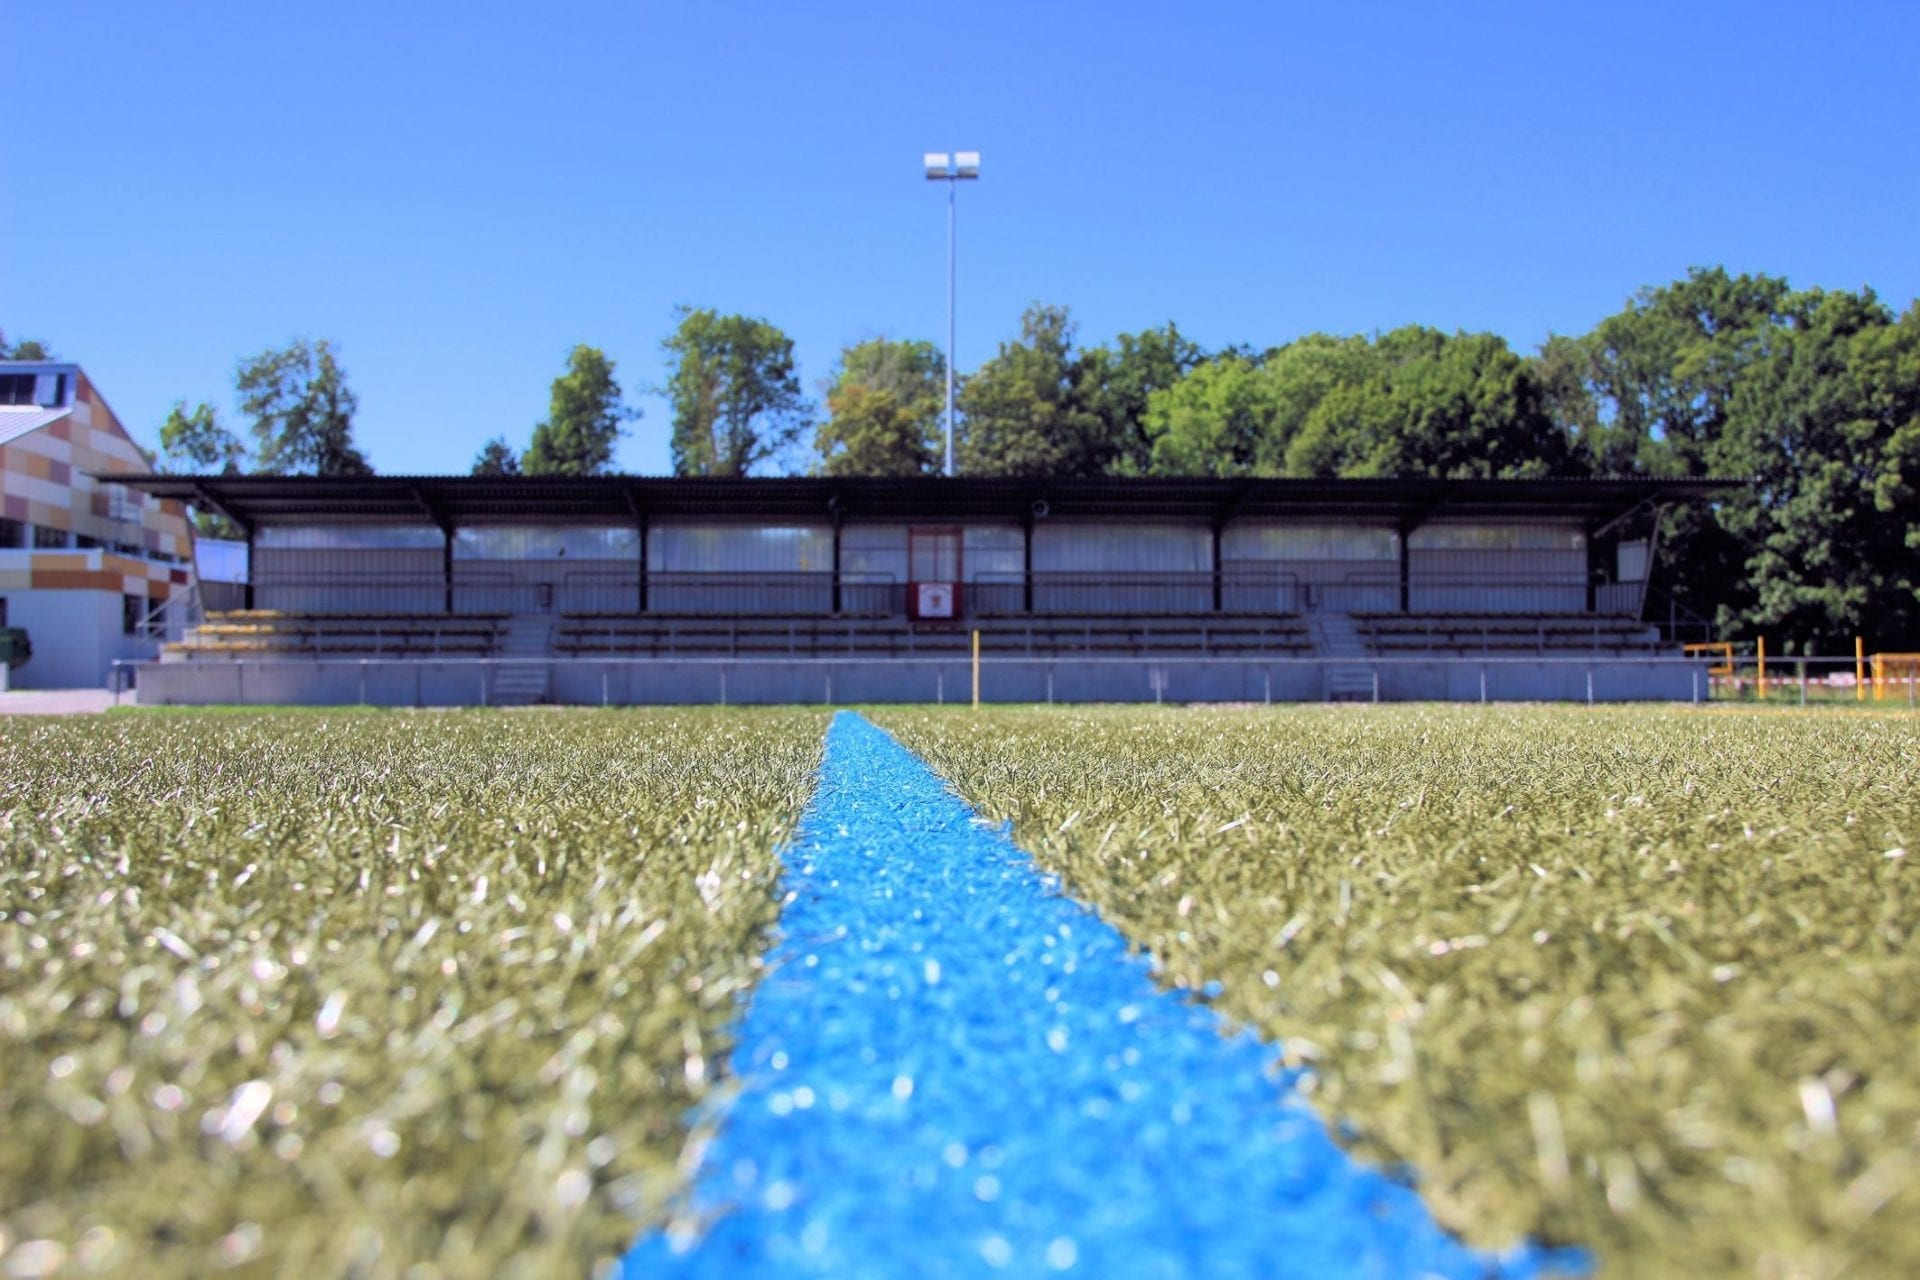 LigaTurf RS+ synthetic turf proves its quality: